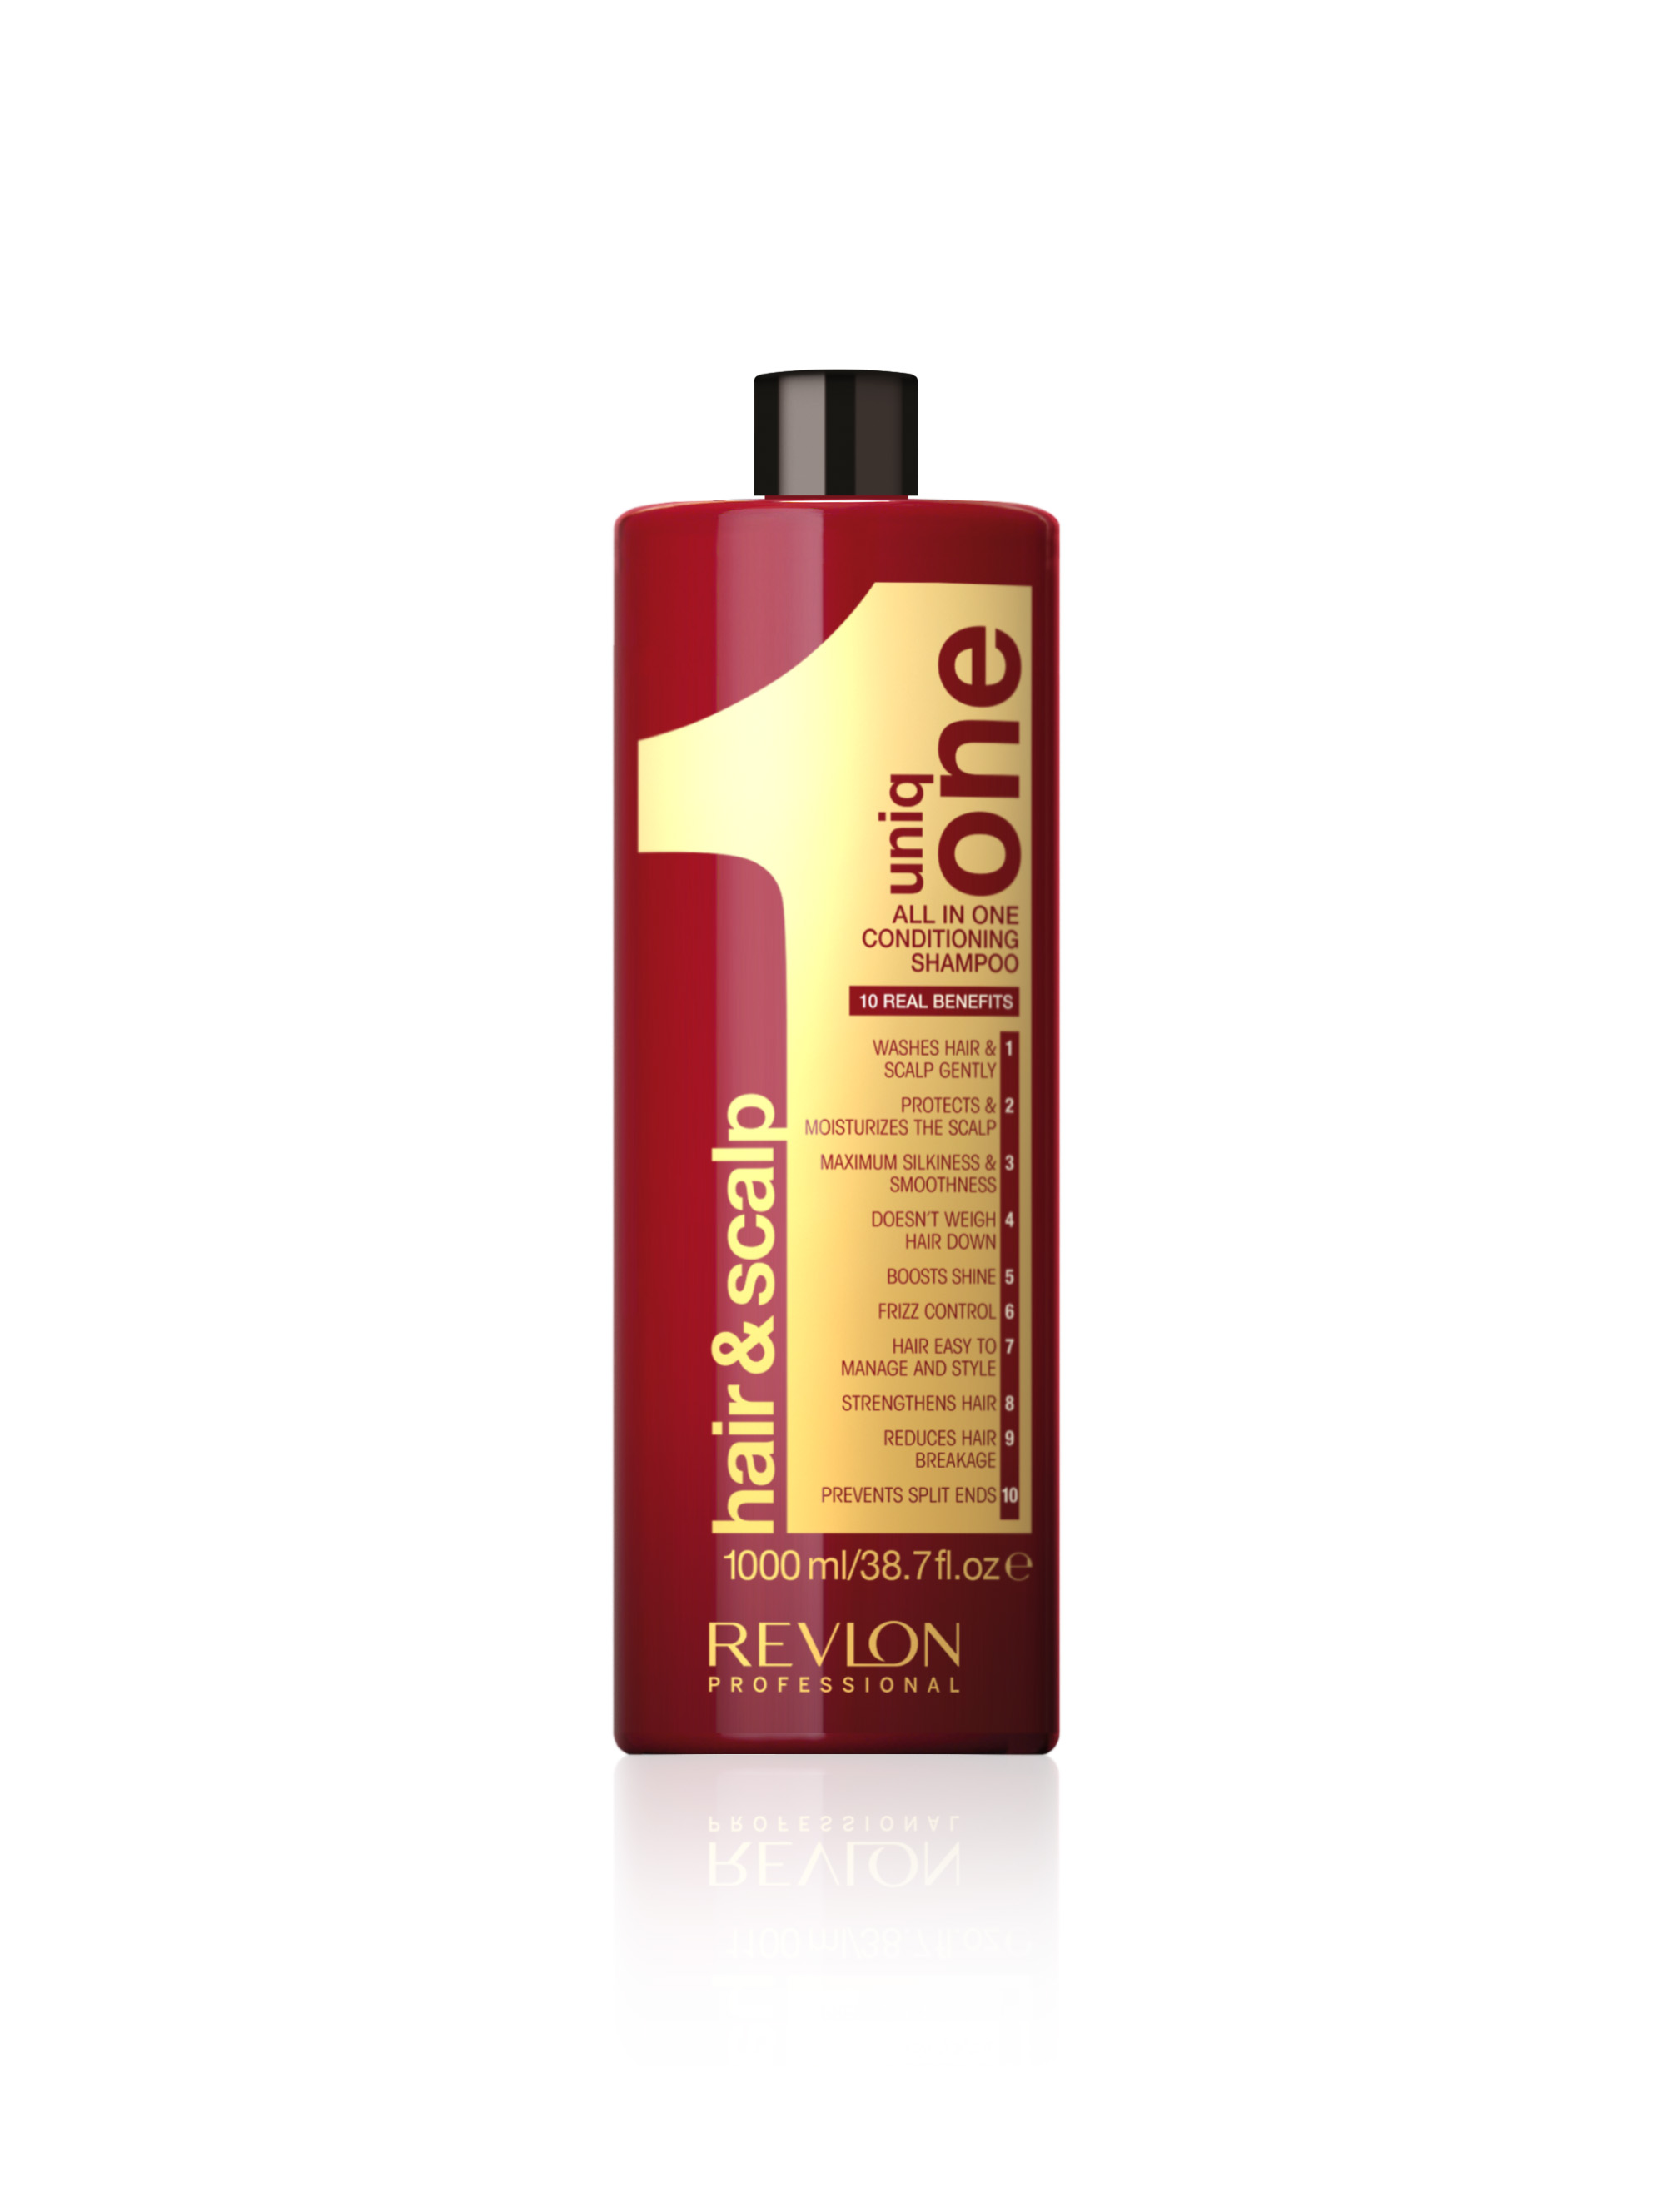 REVLON Professional Шампунь-кондиционер для воллос / UNIQ ONE SHAMPOO 1000 мл шампуни revlon professional шампунь кондиционер uniq one conditioning shampoo 300 мл